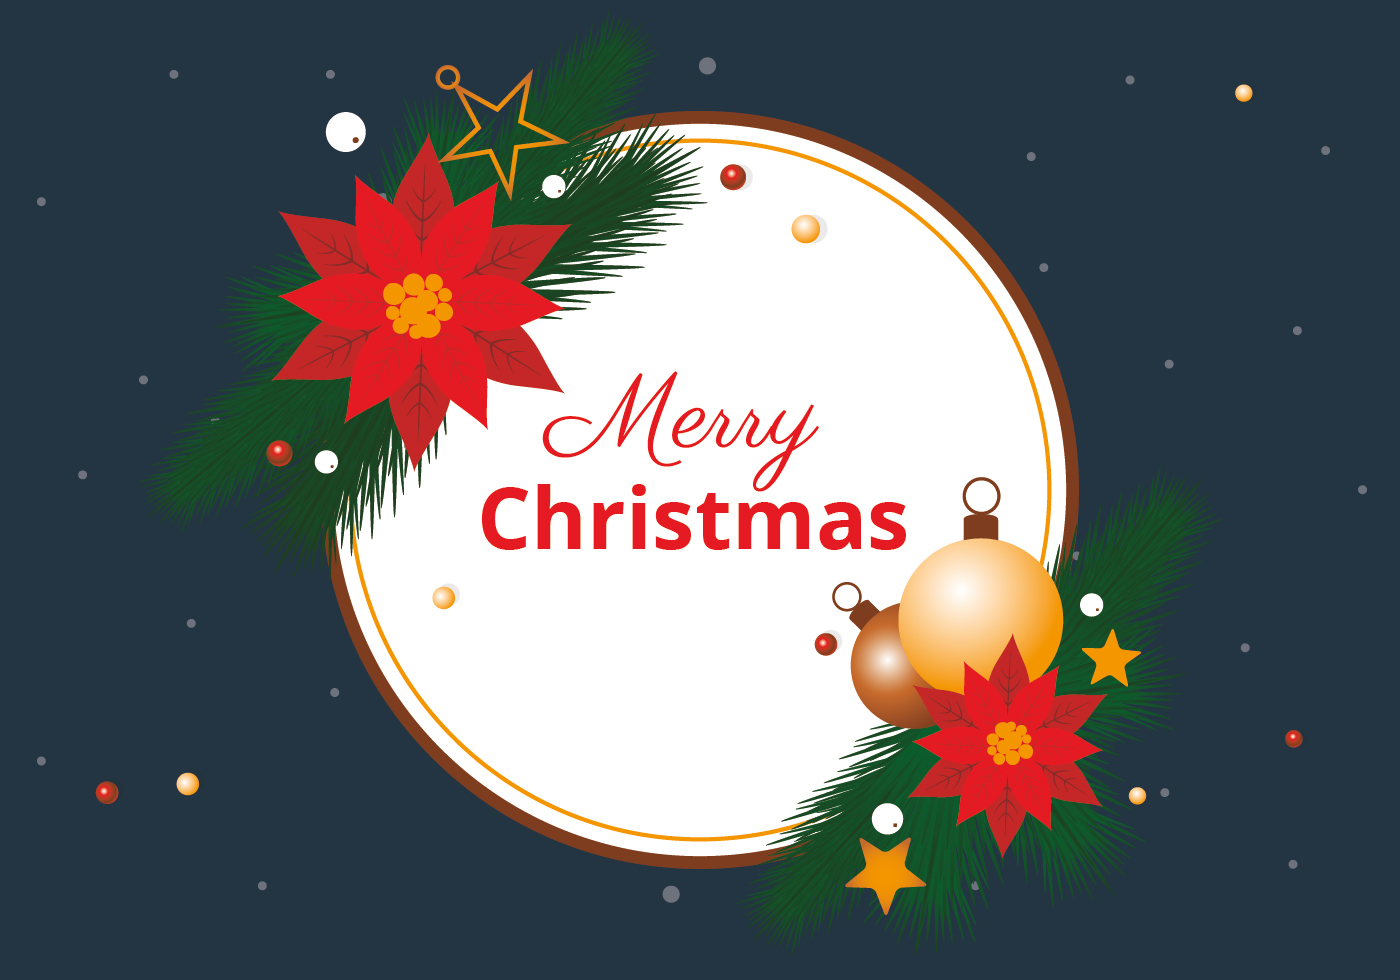 Free Christmas Elements Background Vector Download Free Vector Art Stock Graphics Amp Images